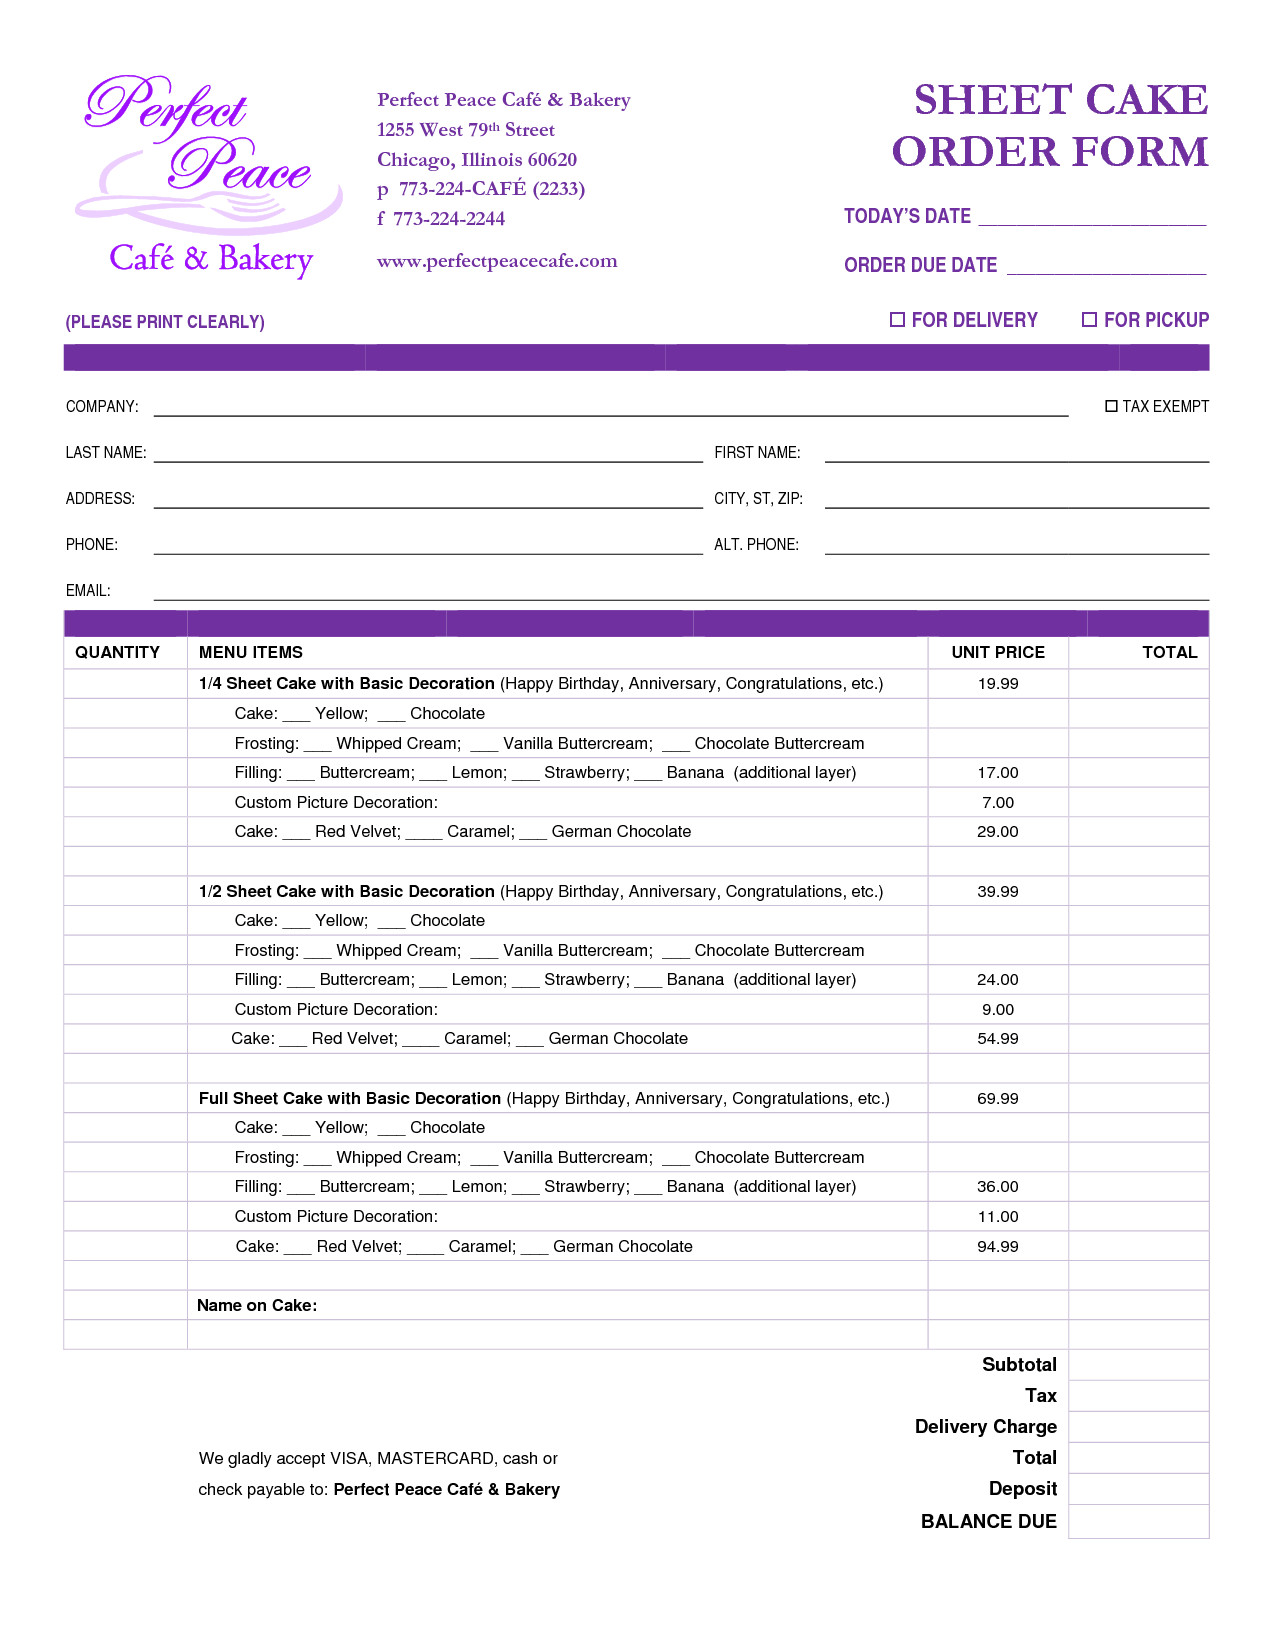 Cake order form Templates Cake order form Template Free Google Search